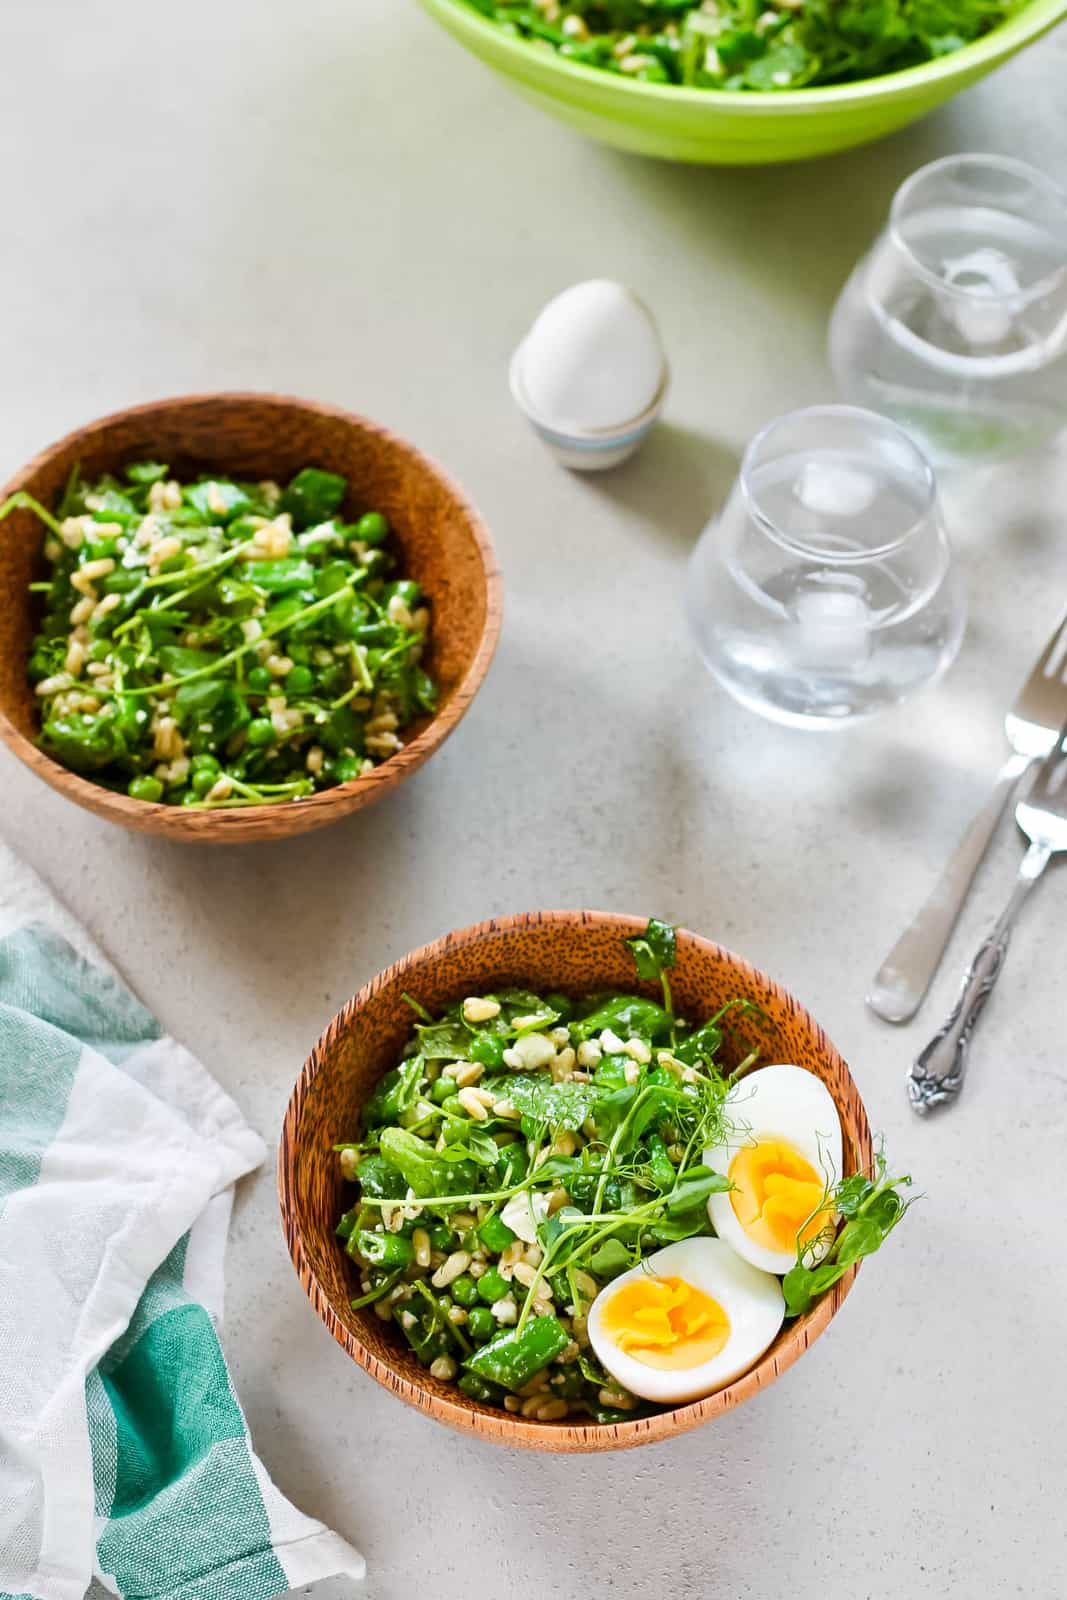 two wooden salad bowls with green pea salad and a hard boiled egg in an egg cup